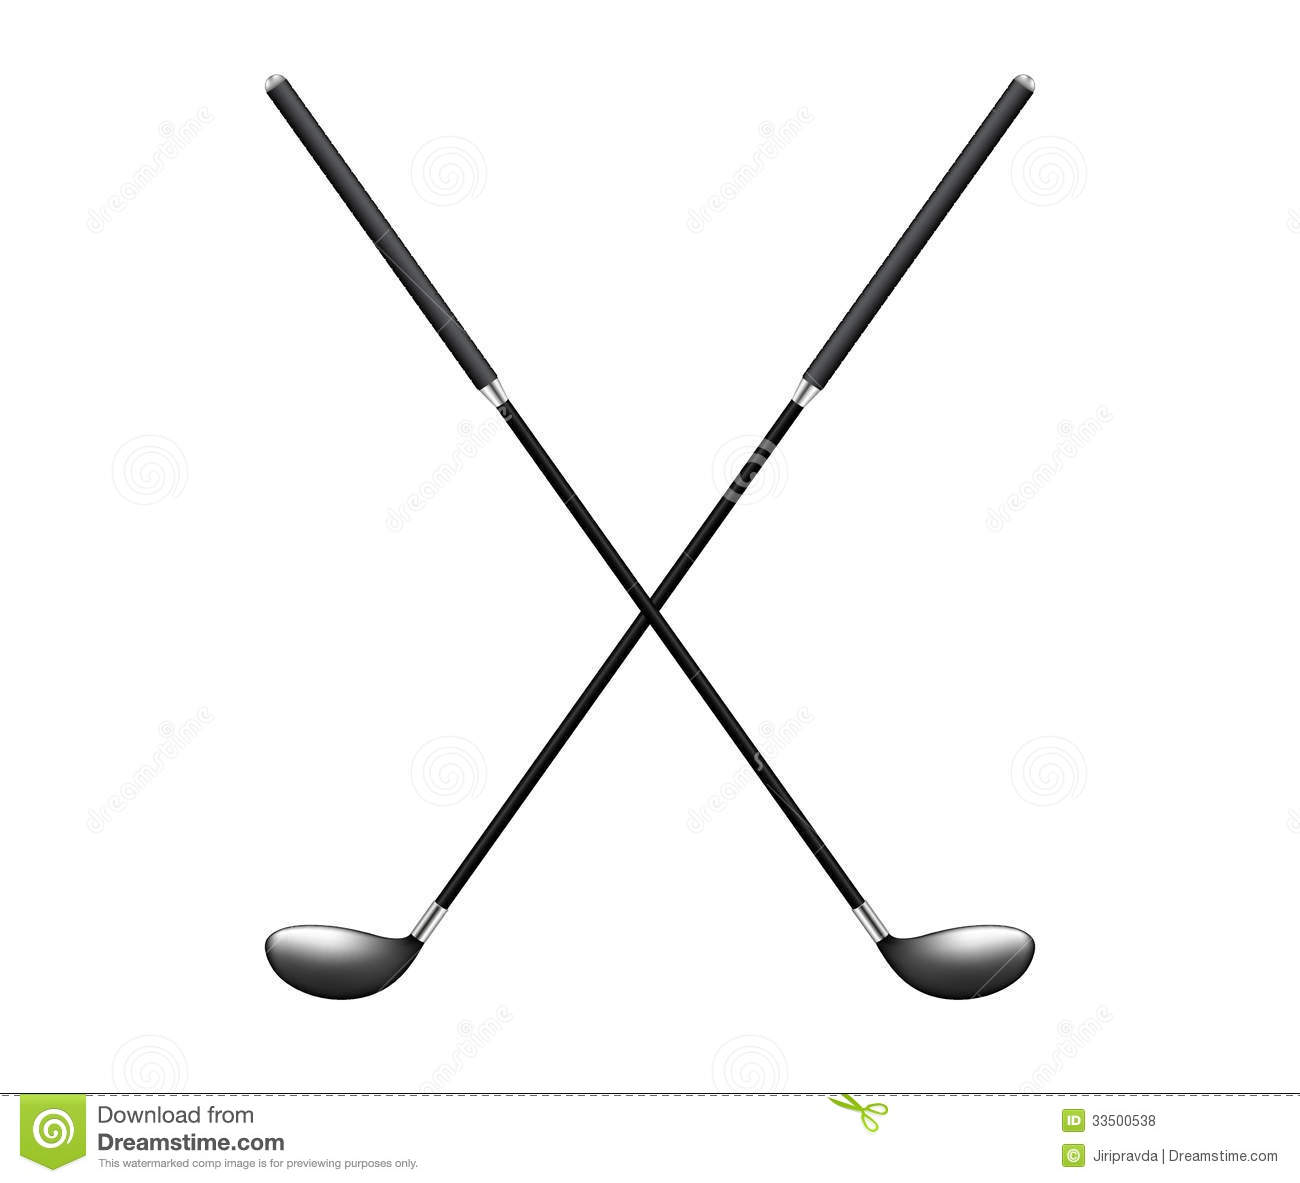 Two Crossed Golf Clubs Stock Vector Illustration Of